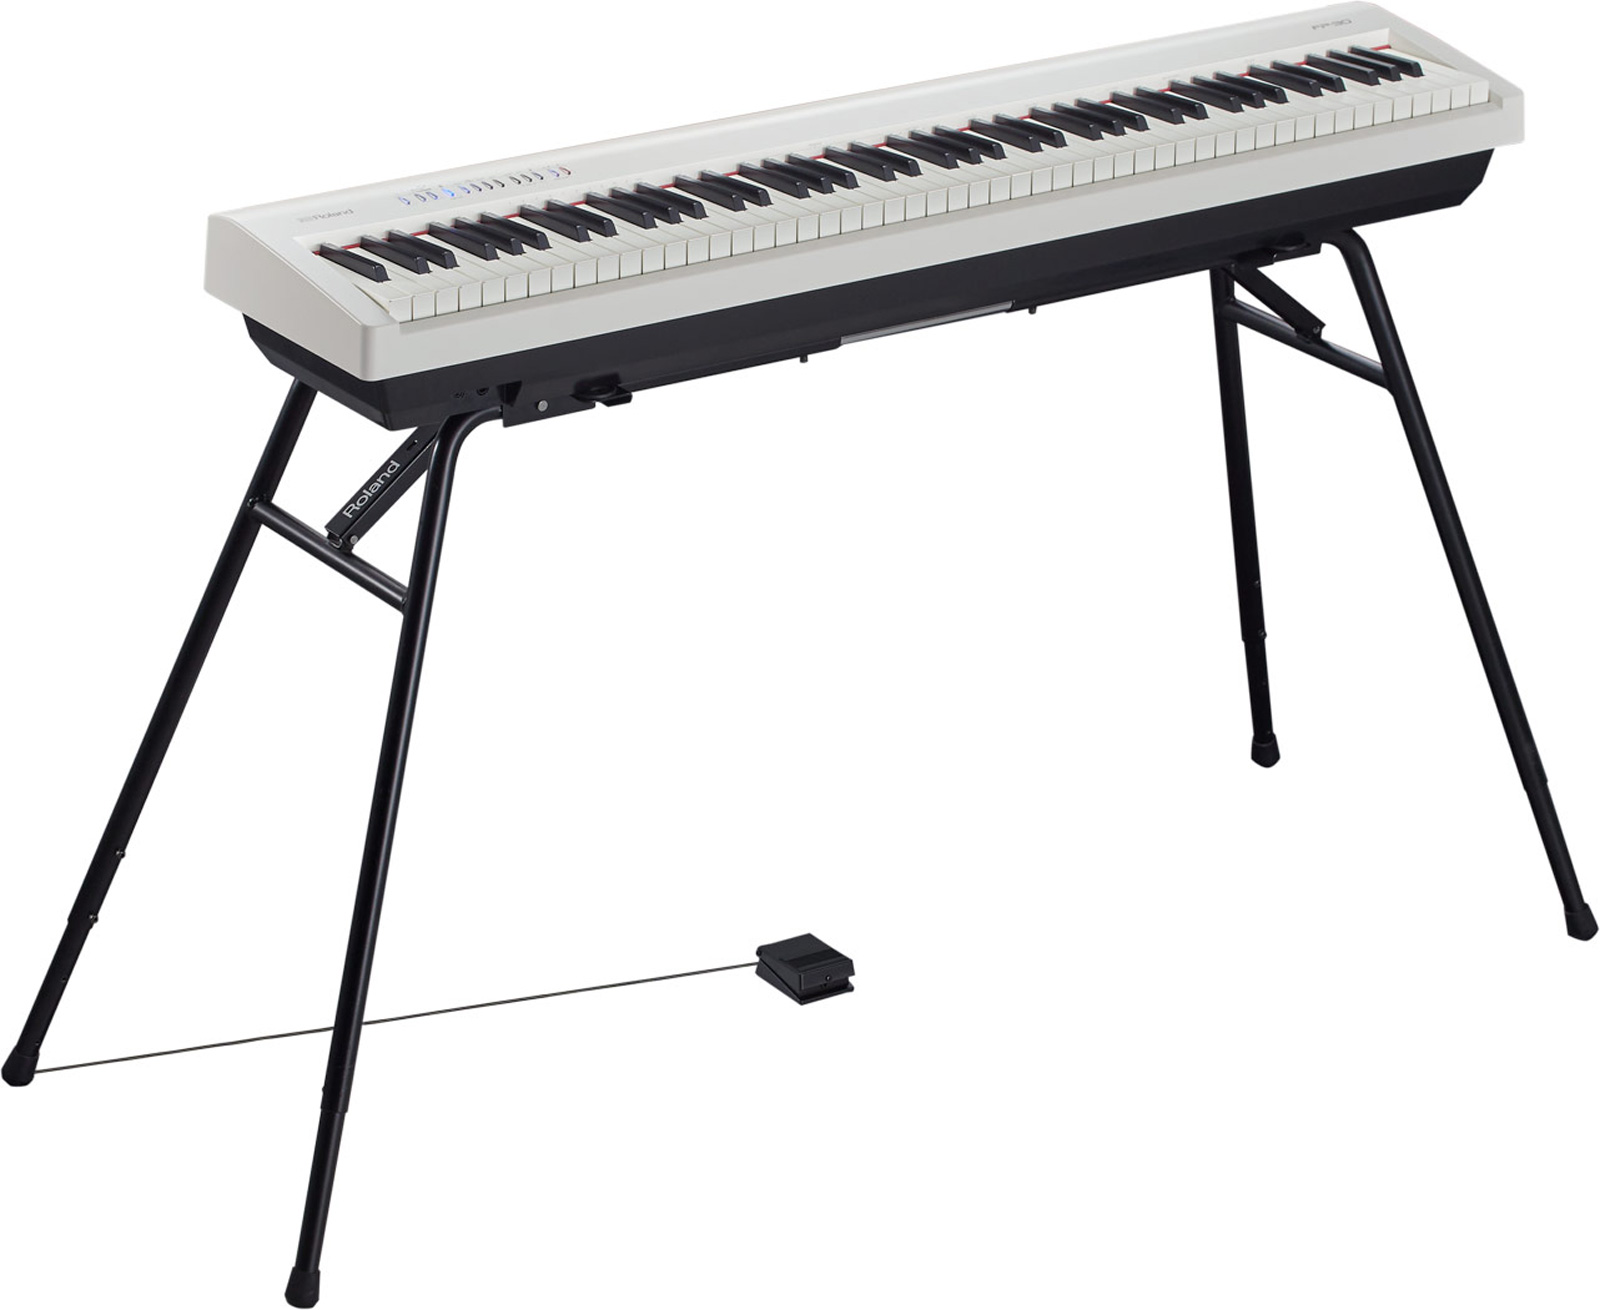 roland fp series digital piano. Black Bedroom Furniture Sets. Home Design Ideas